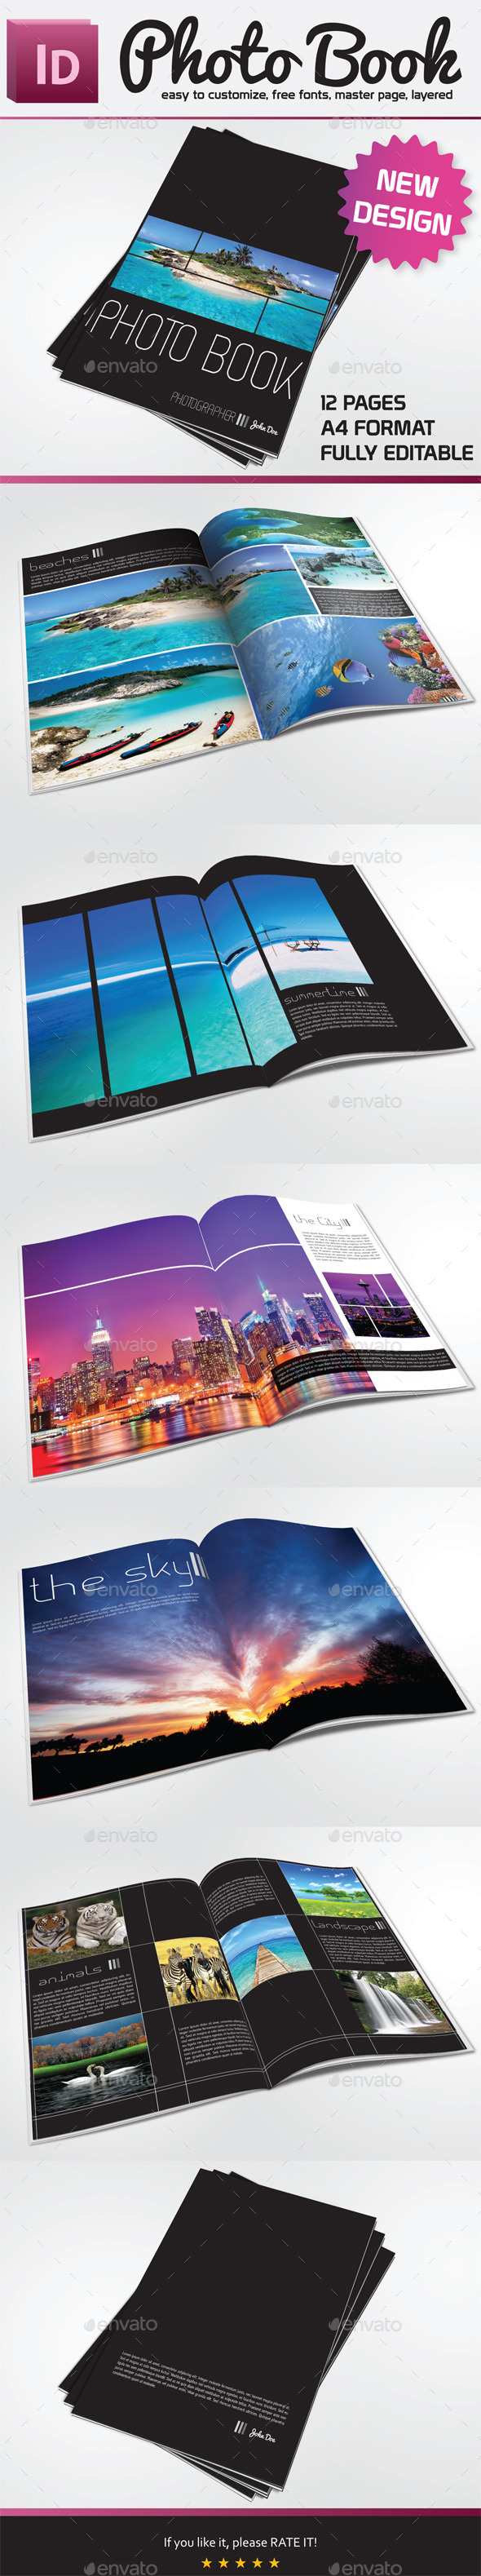 Photo Book Template